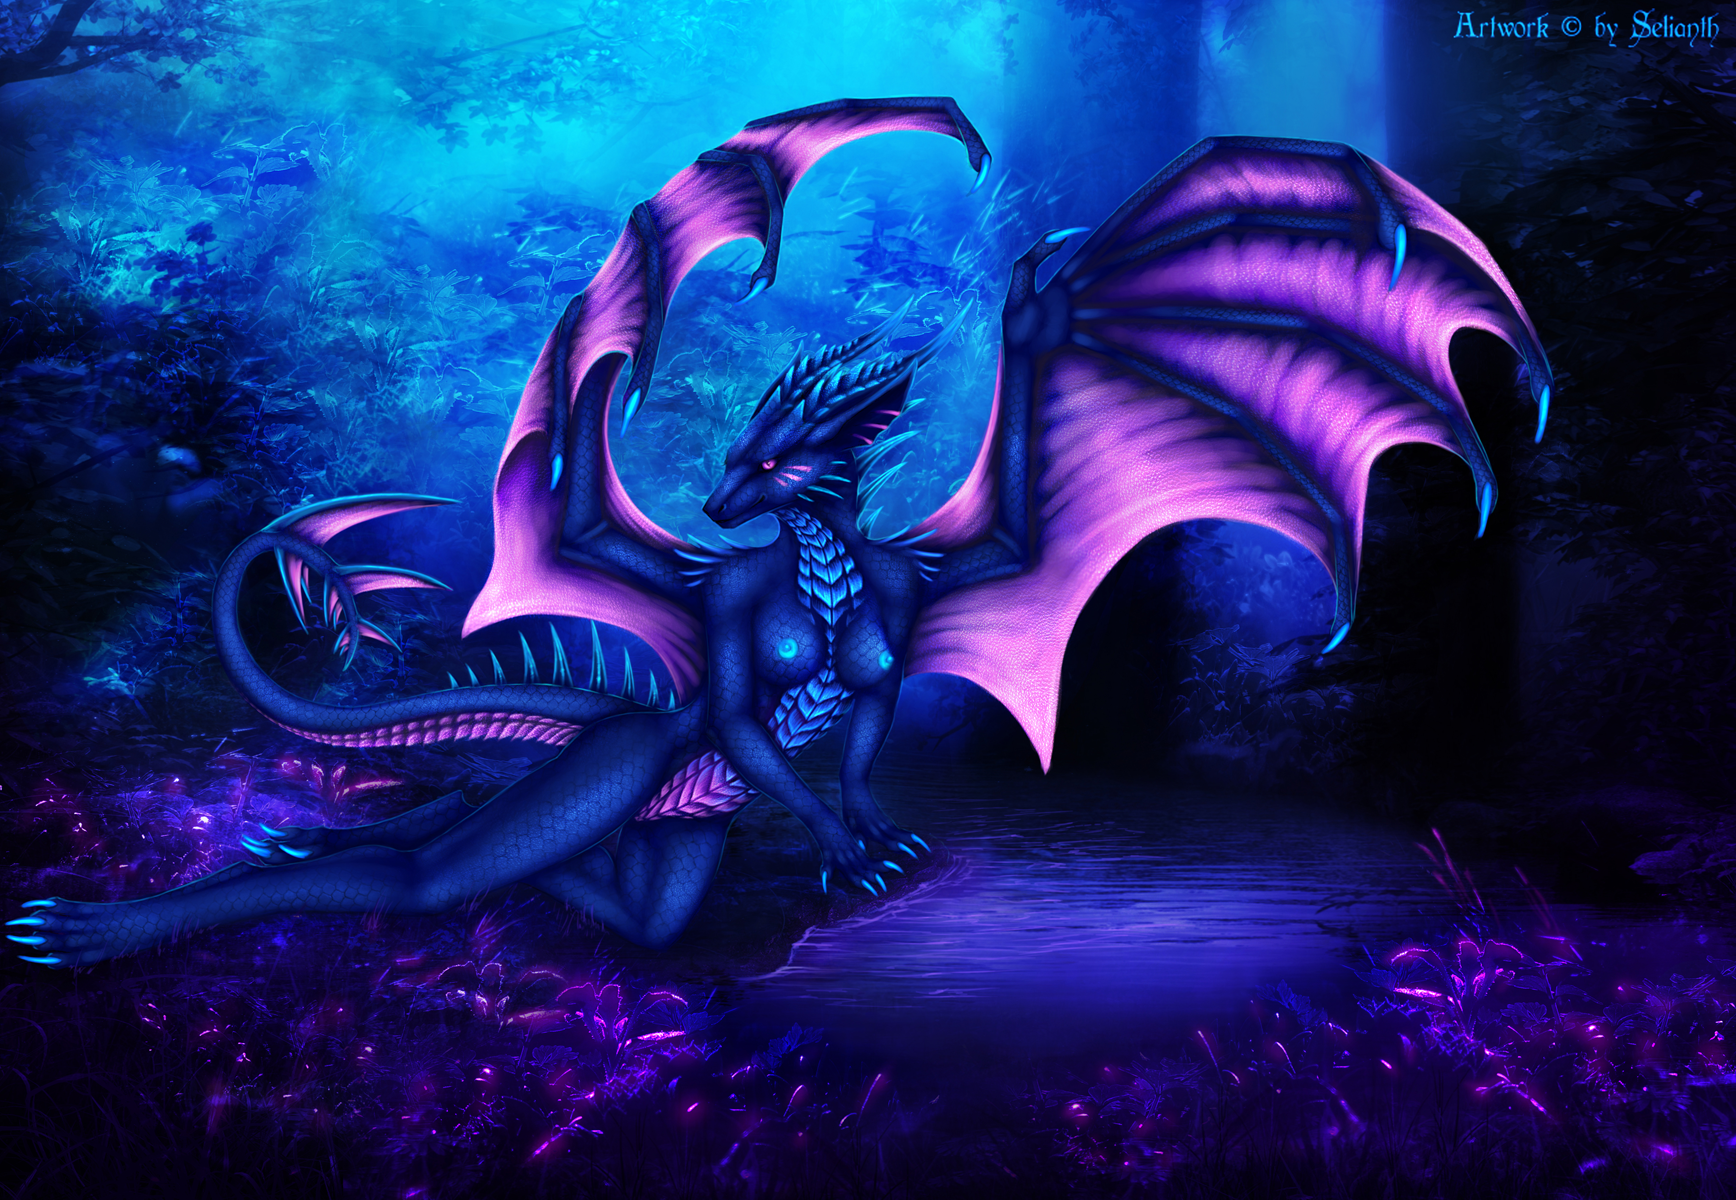 e621 2016 4_toes anthro breasts dragon female forest hi_res horn membranous_wings non-mammal_breasts nude outside purple_eyes scalie selianth selianth_(character) sitting solo toes tree wings